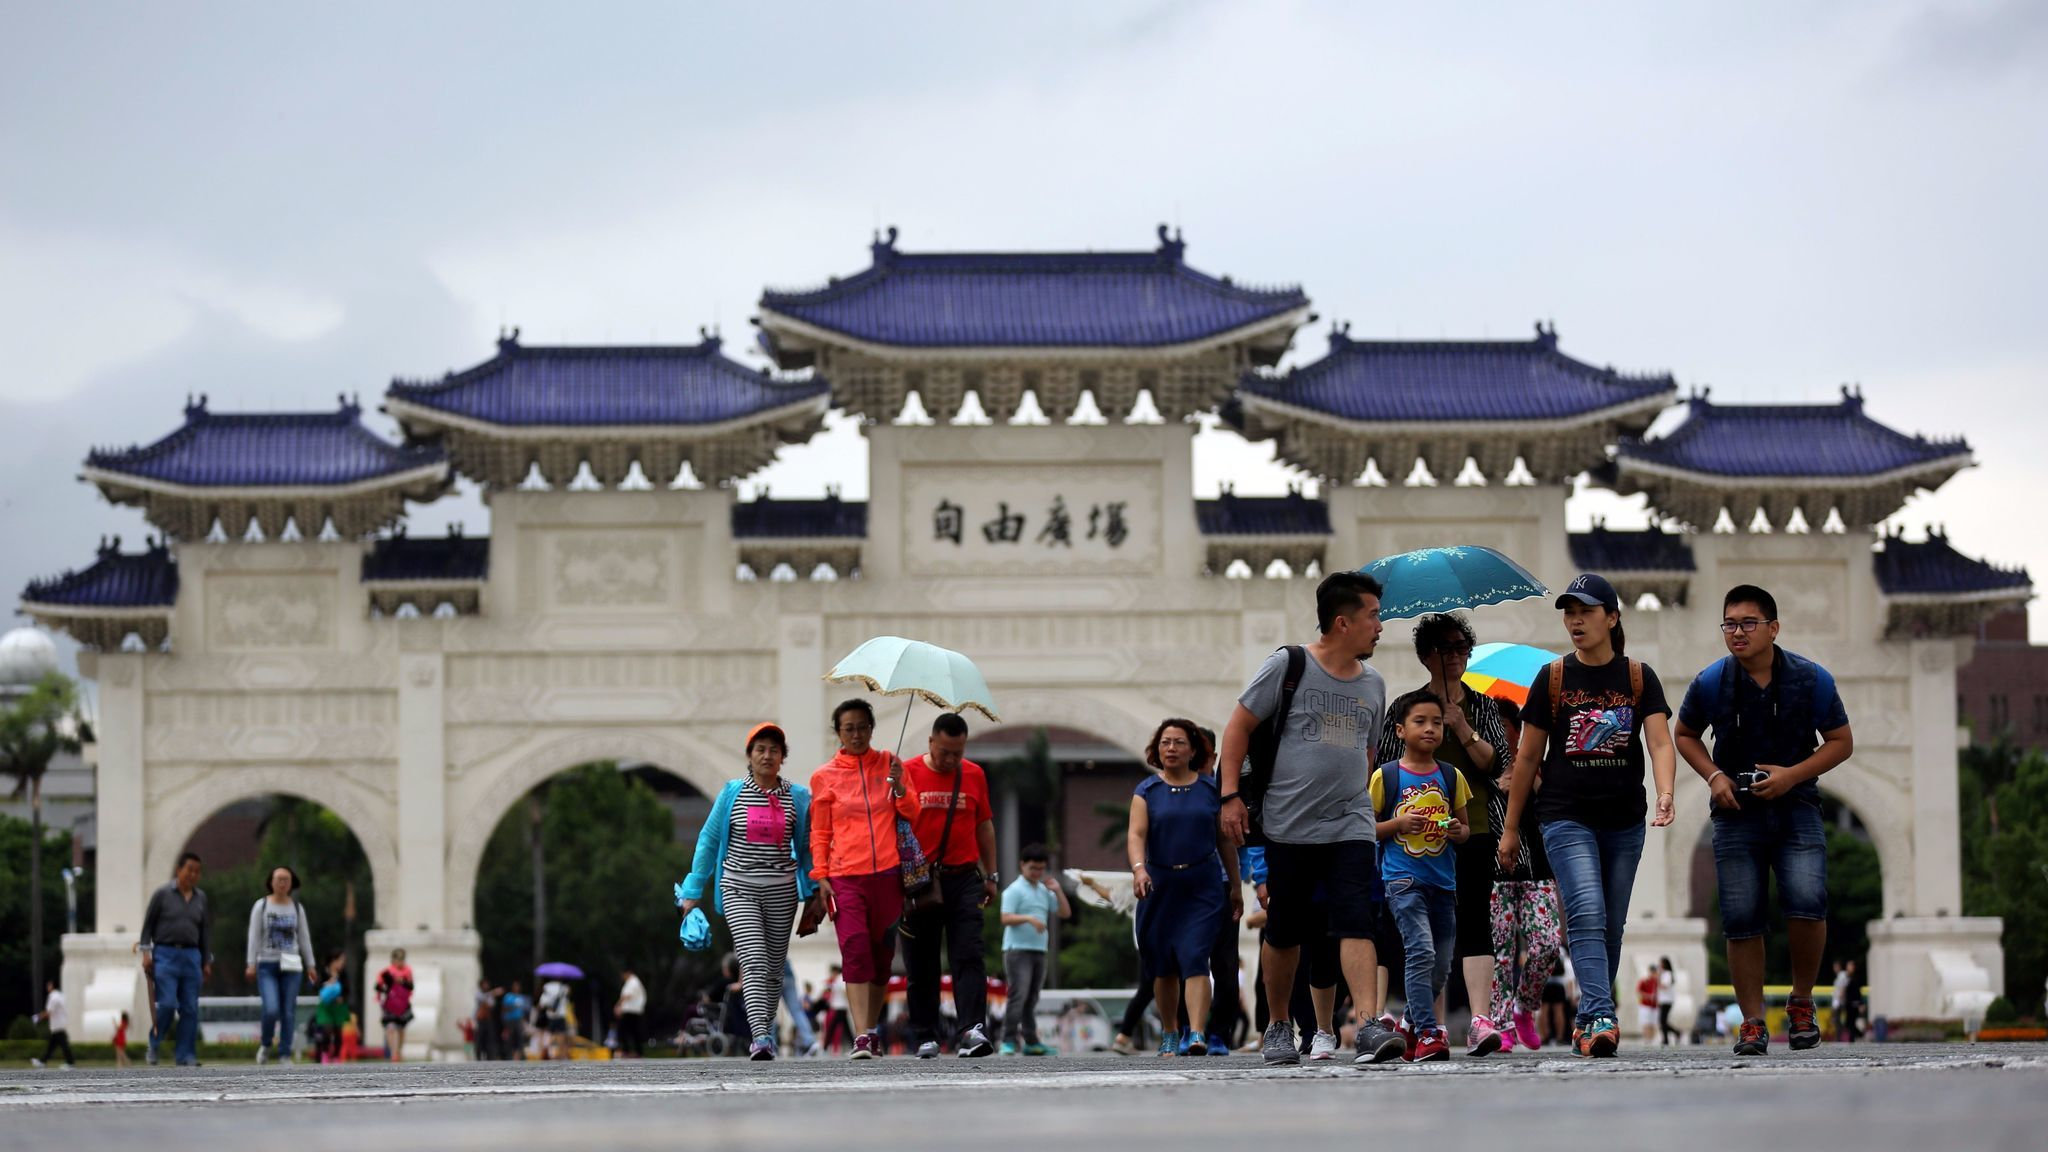 Chinese tourists walk outside the Chiang Kai-shek memorial hall in Taipei, Taiwan, on April 19, 2017.